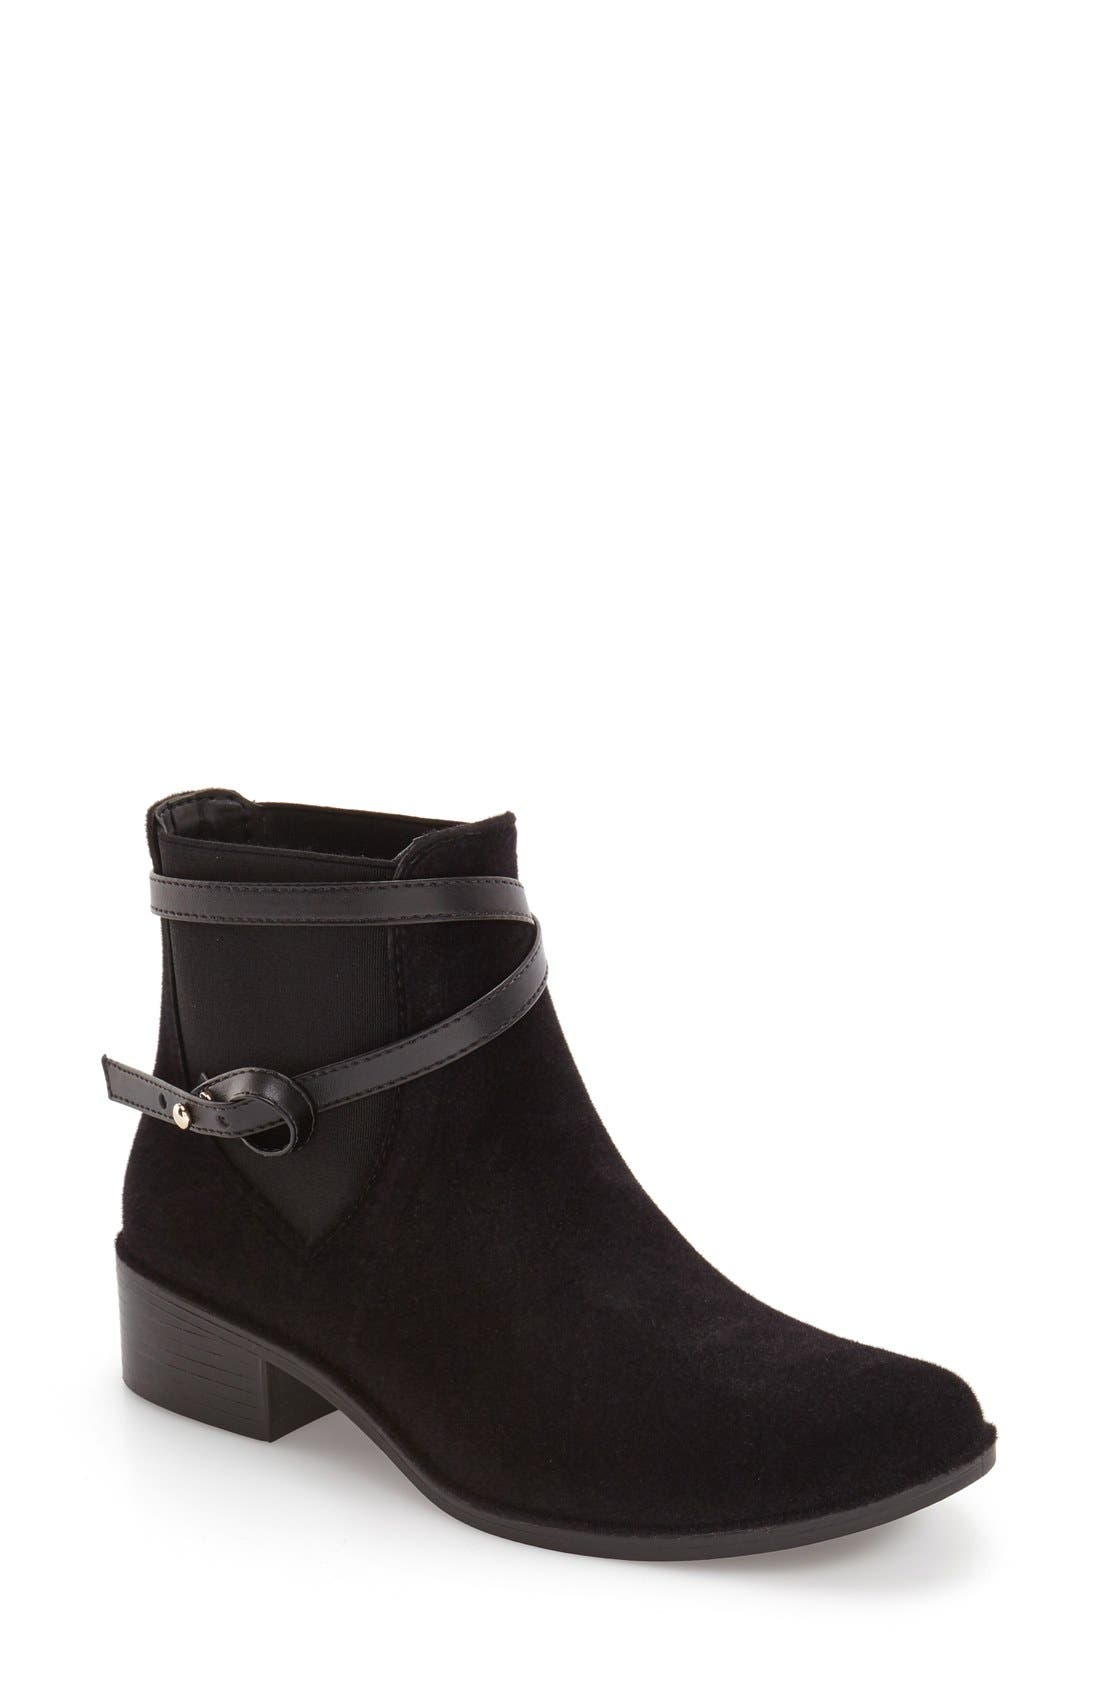 Alternate Image 1 Selected - Bernardo Peony Water Resistant Chelsea Boot (Women)